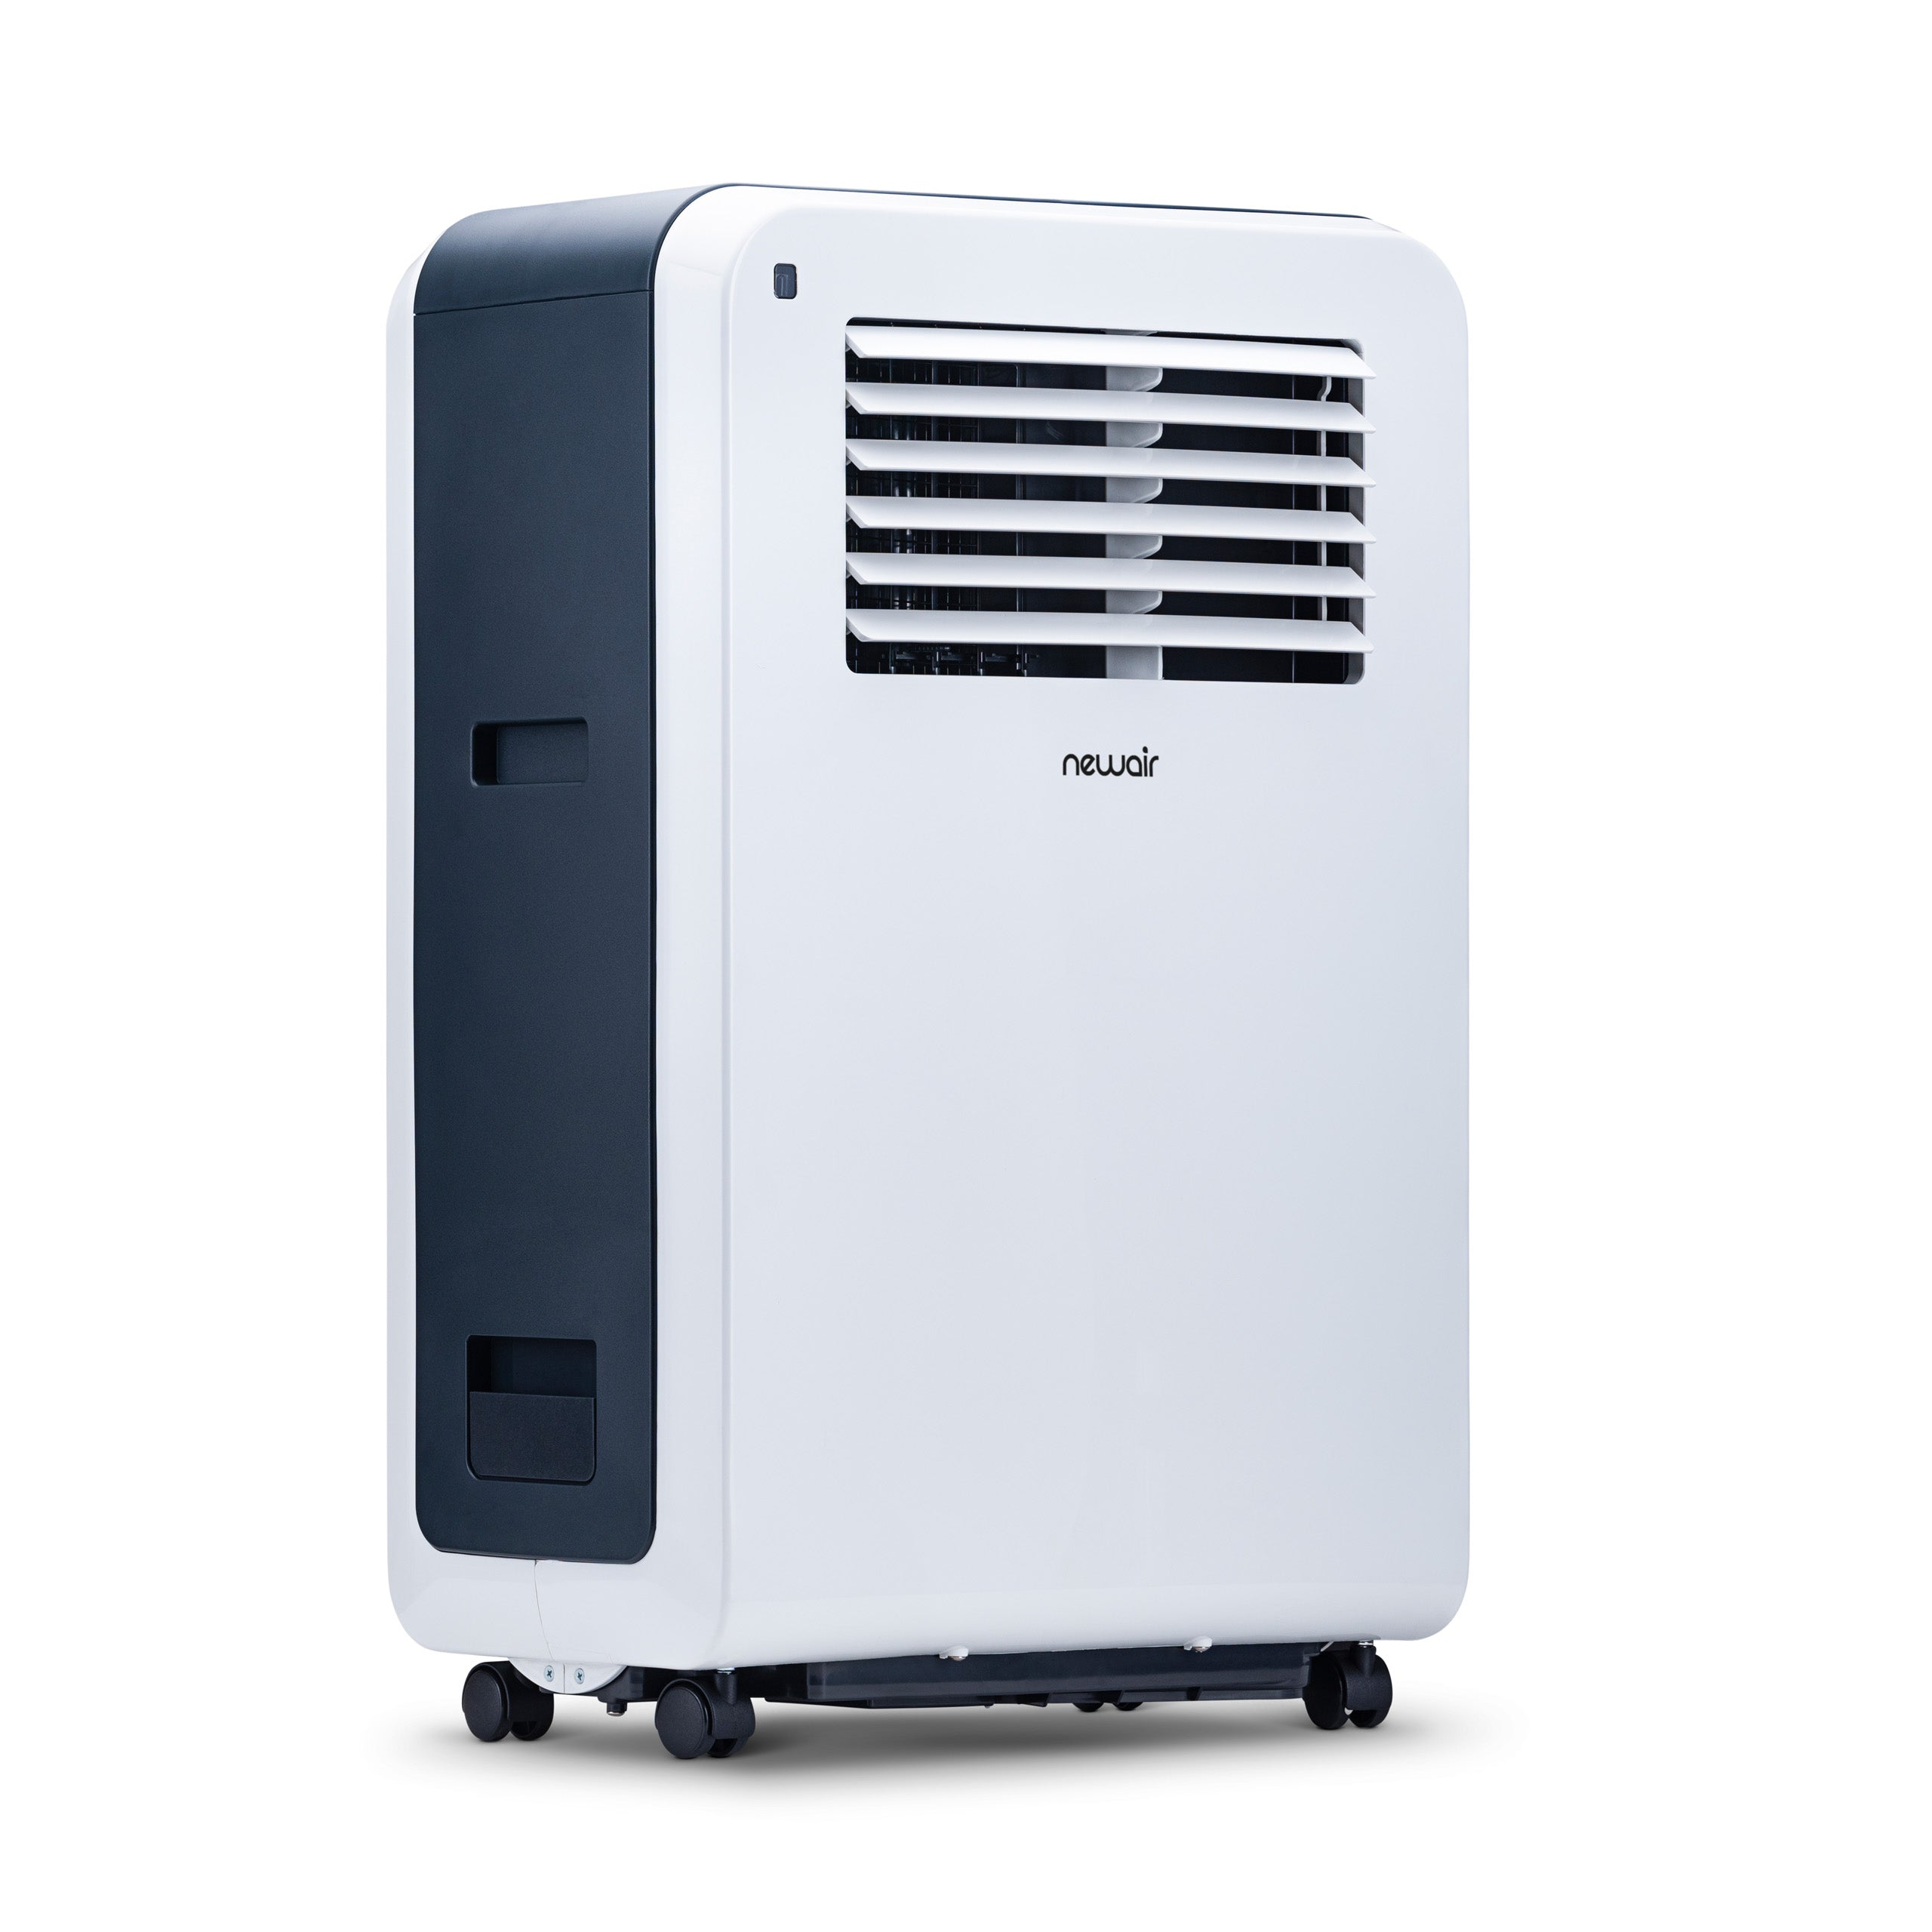 Portable Air Conditioner Troubleshooting And Common Complaints Newair